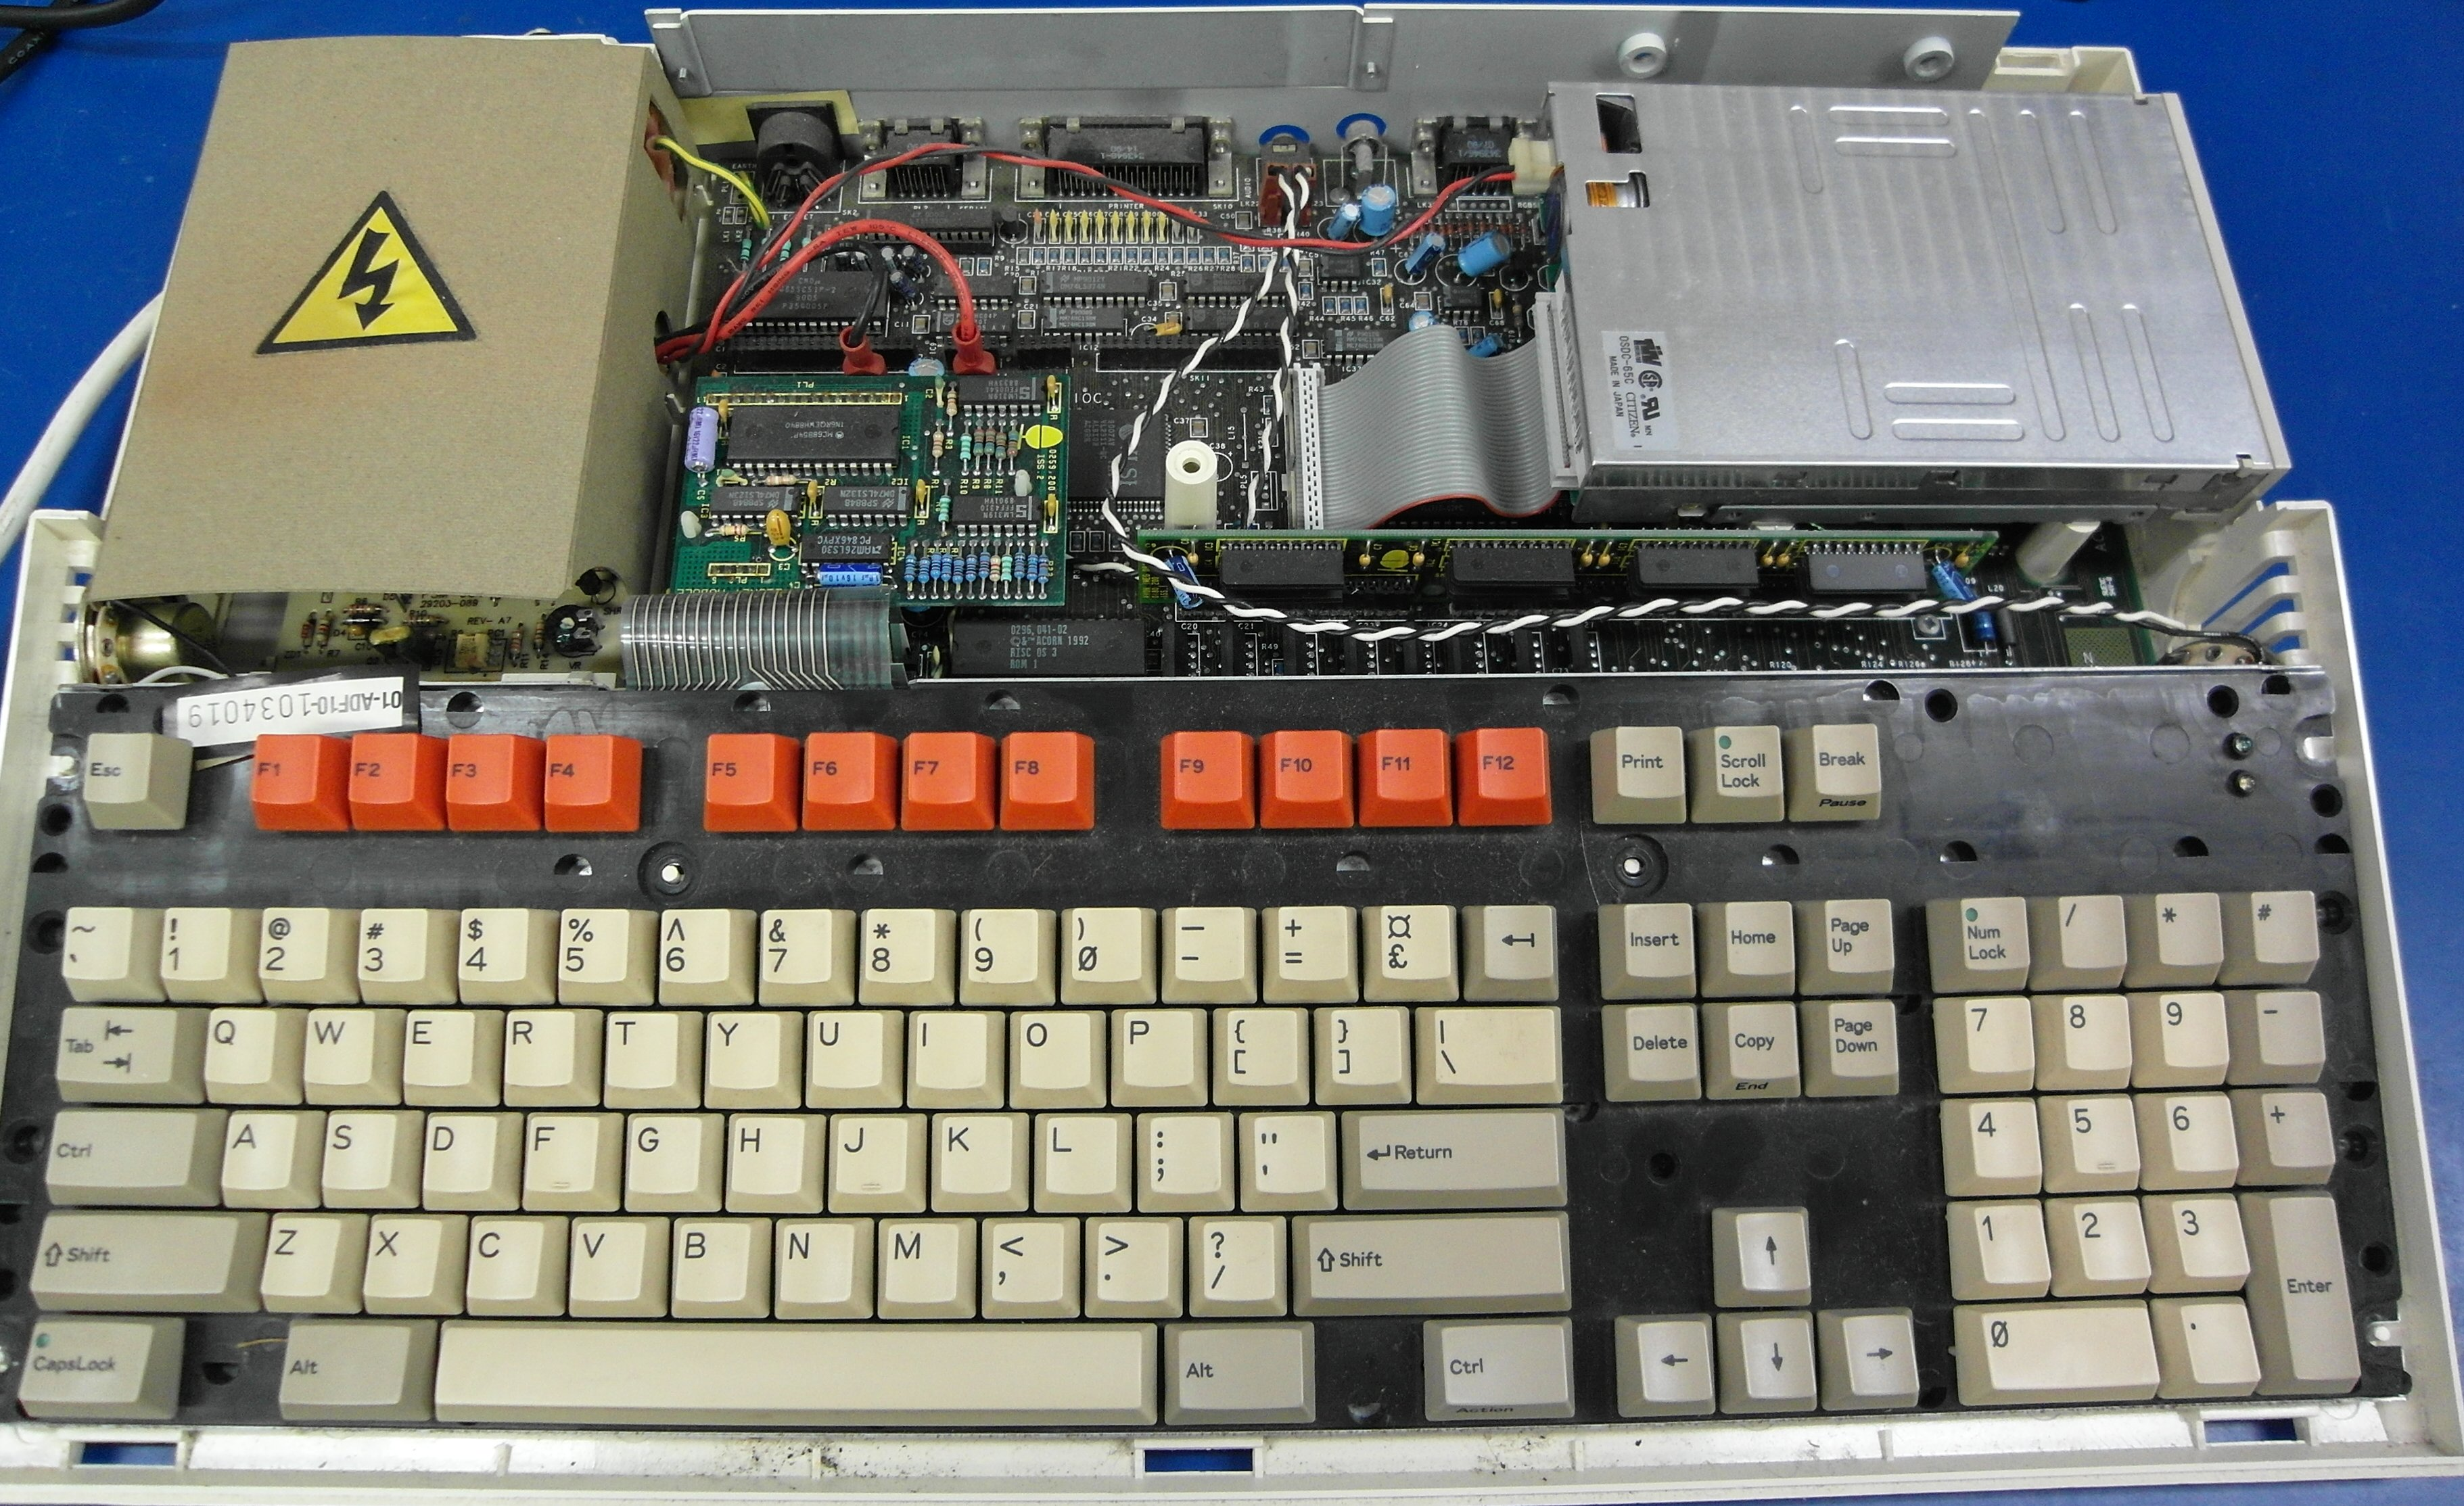 Acorn_Archimedes_A3000_Computer_with_cover_removed.jpg